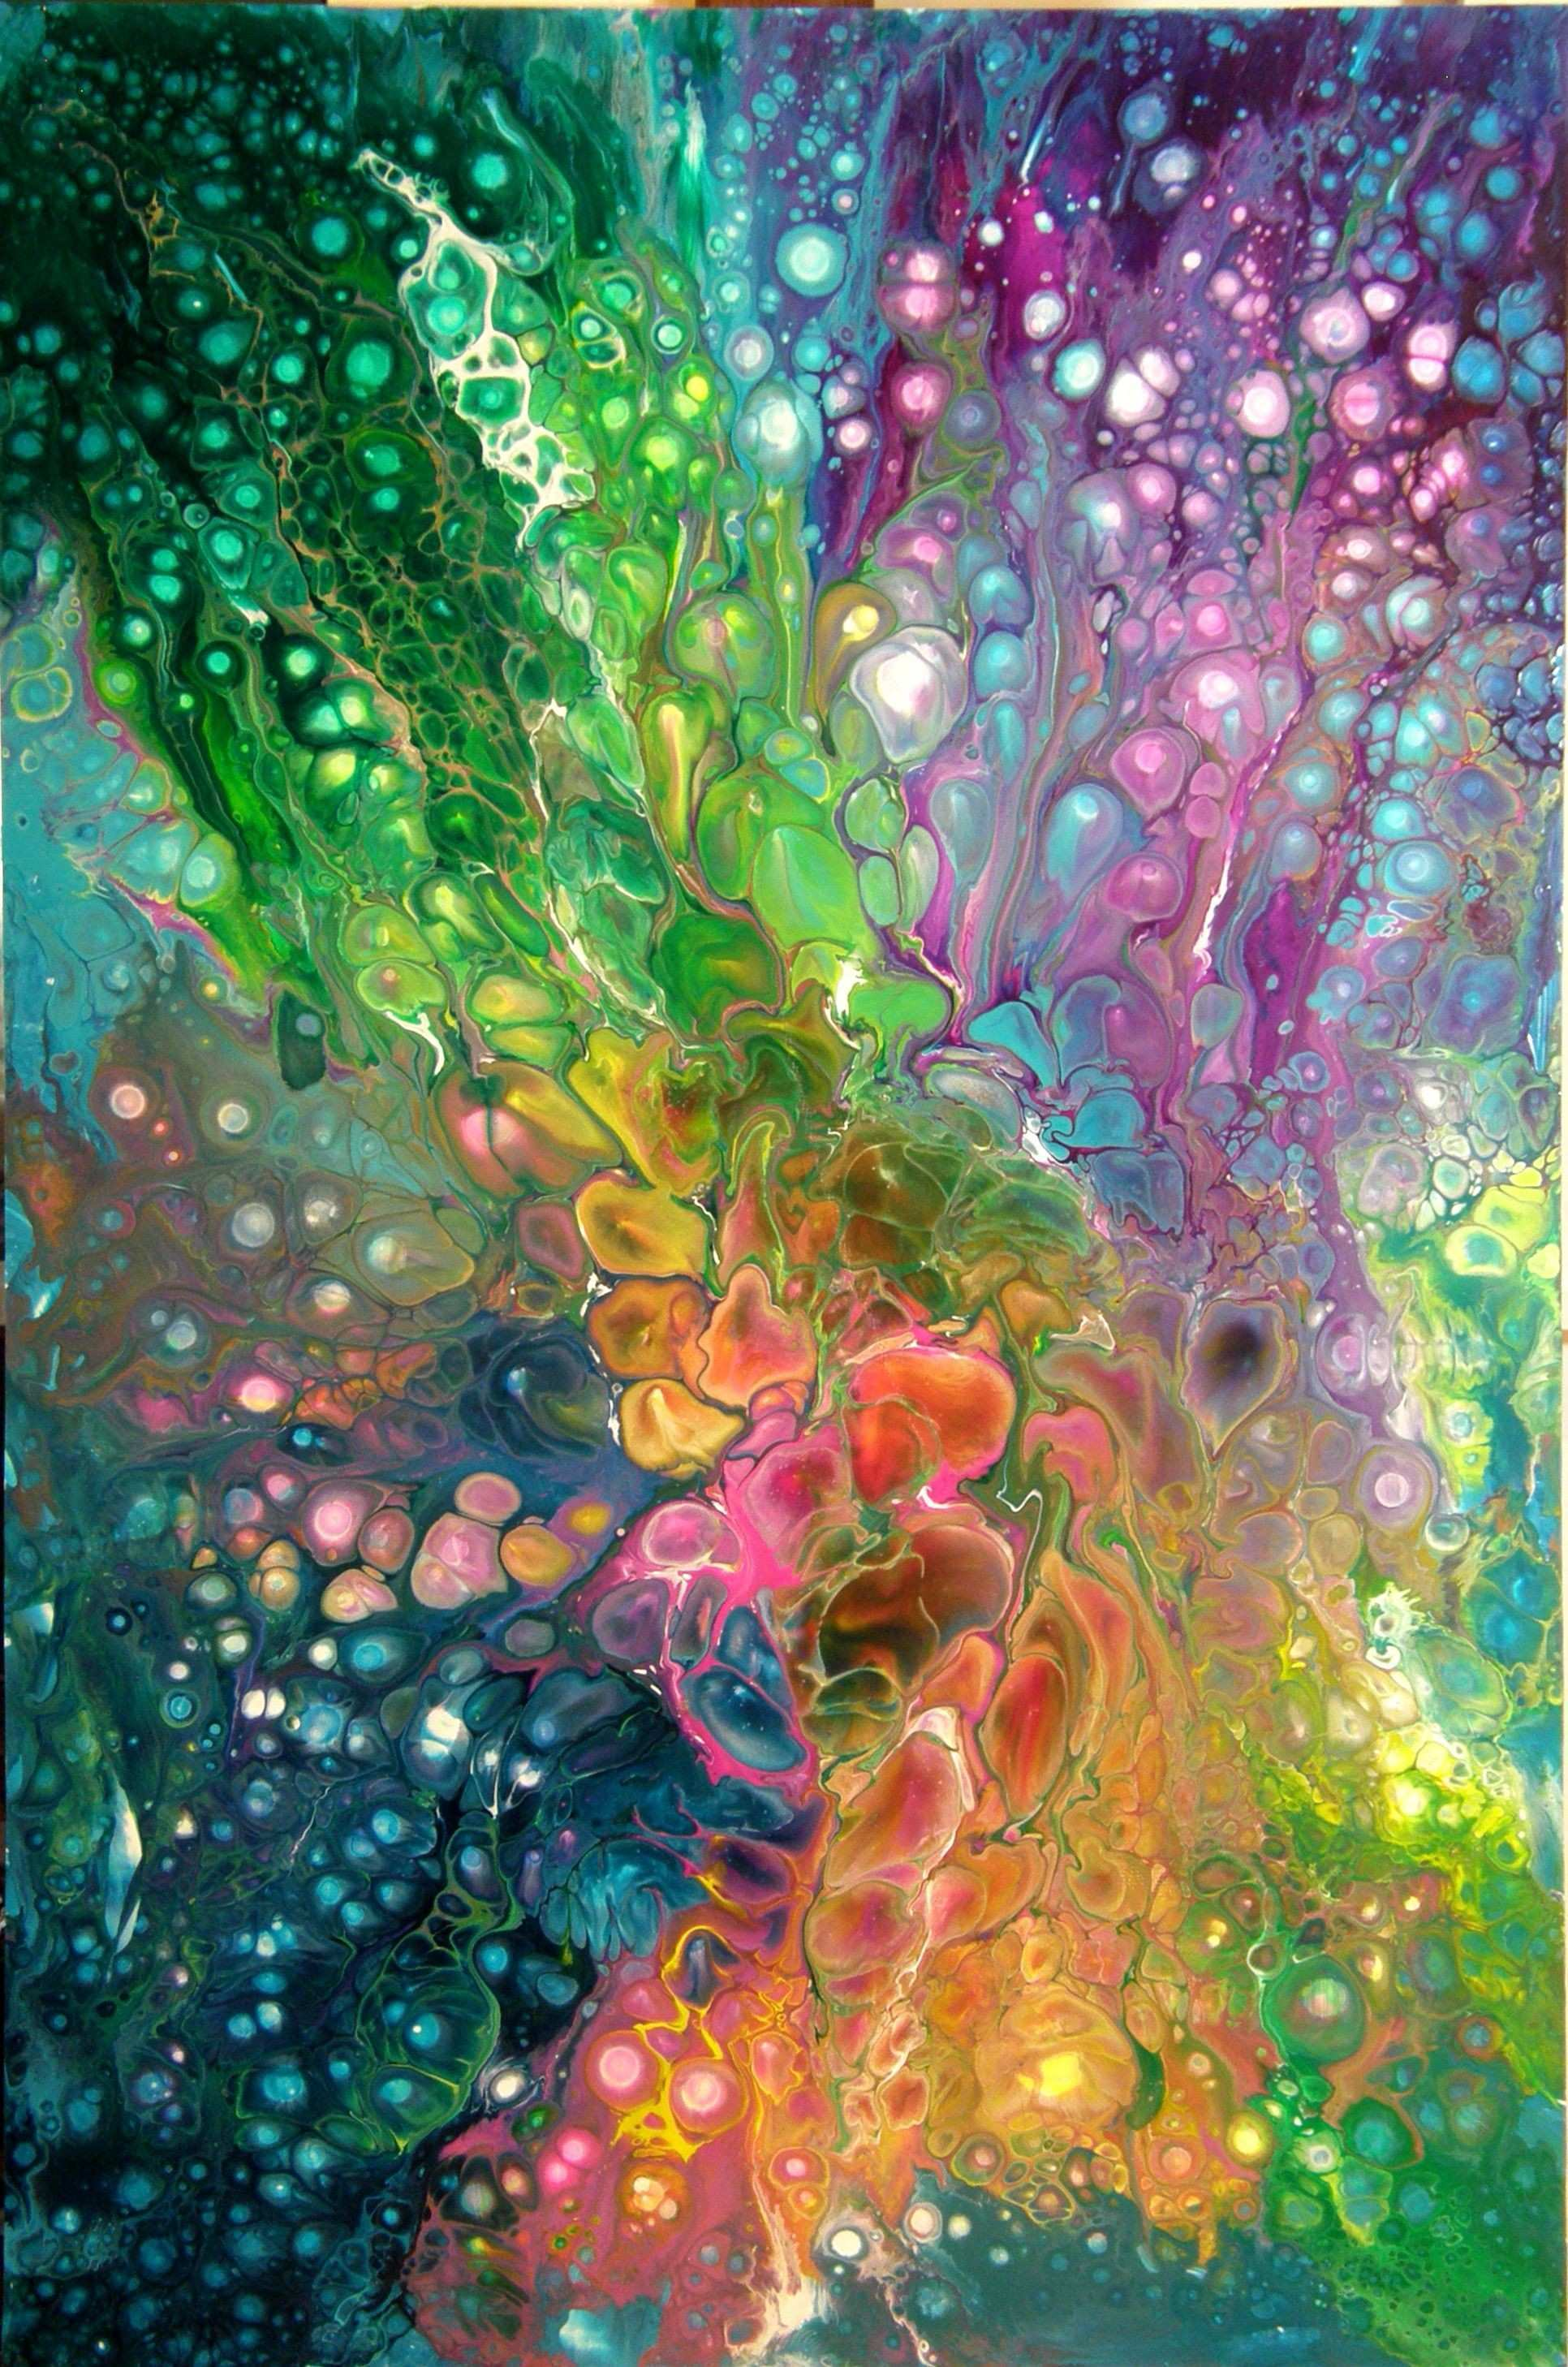 Acrylic Pouring BTW check out some cool art here jeremy